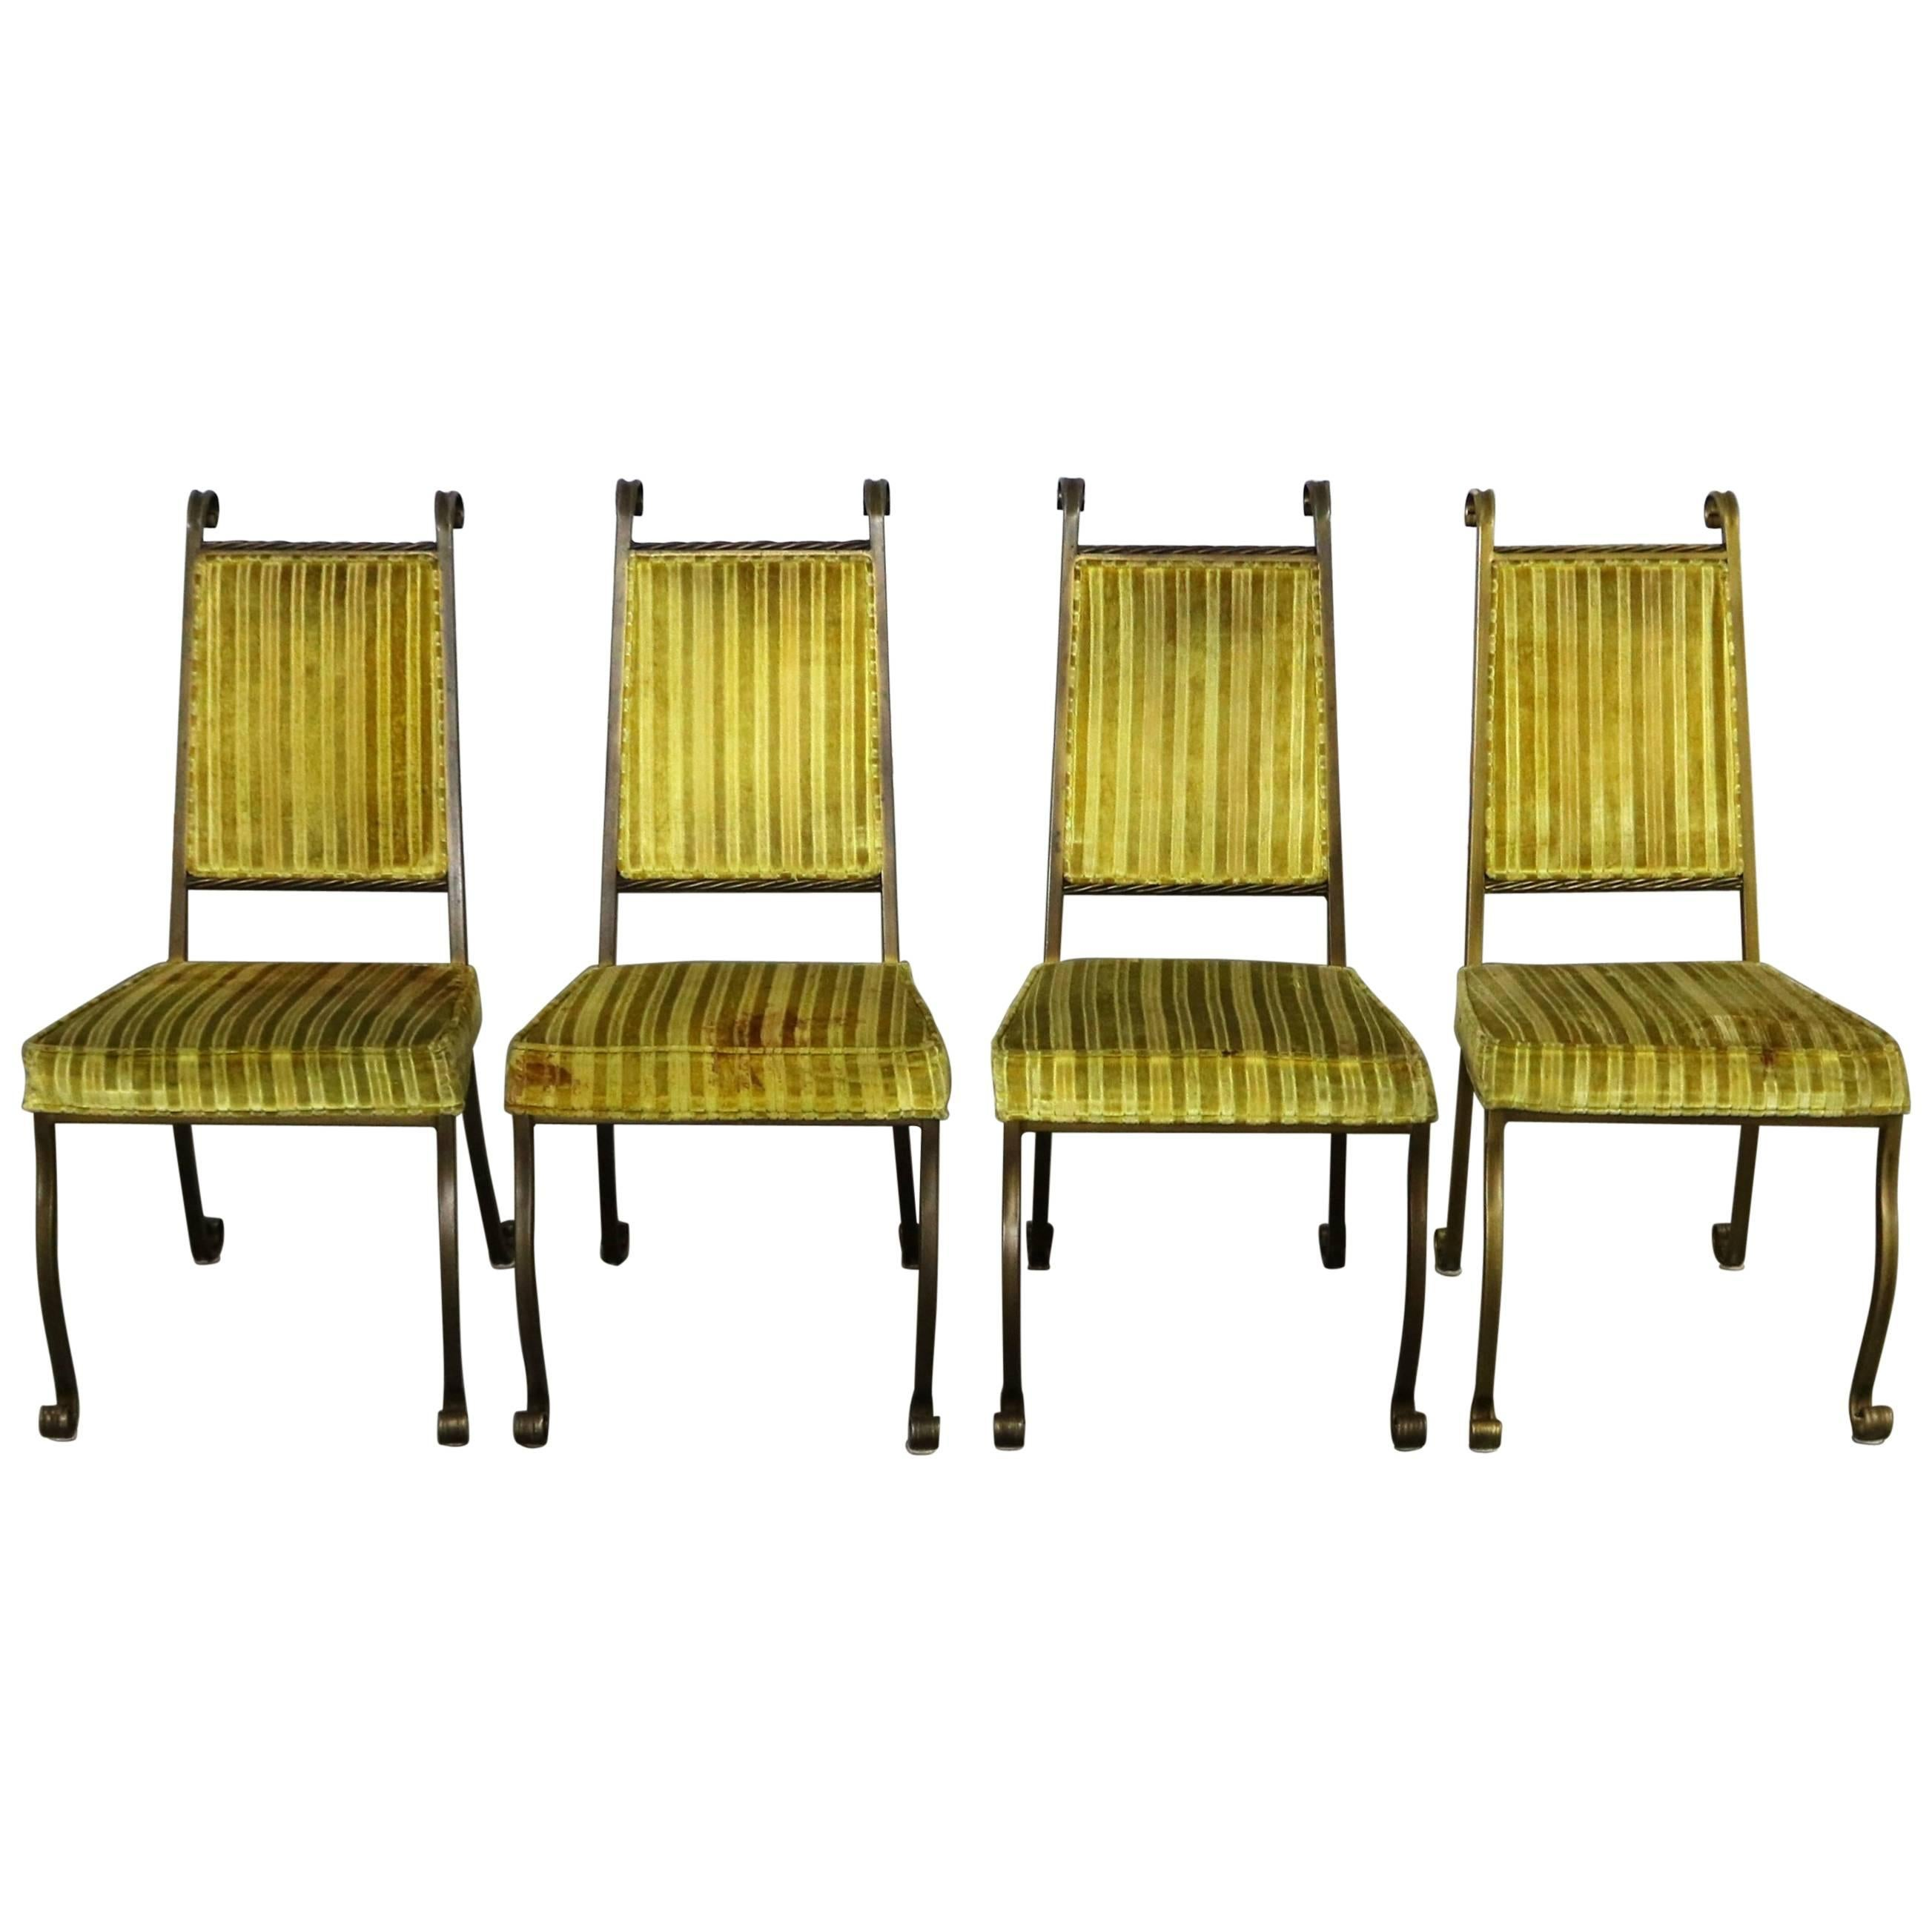 Four Hollywood Regency Wrought Iron Dining Chairs By Swirl Craft Of Sun  Valley For Sale